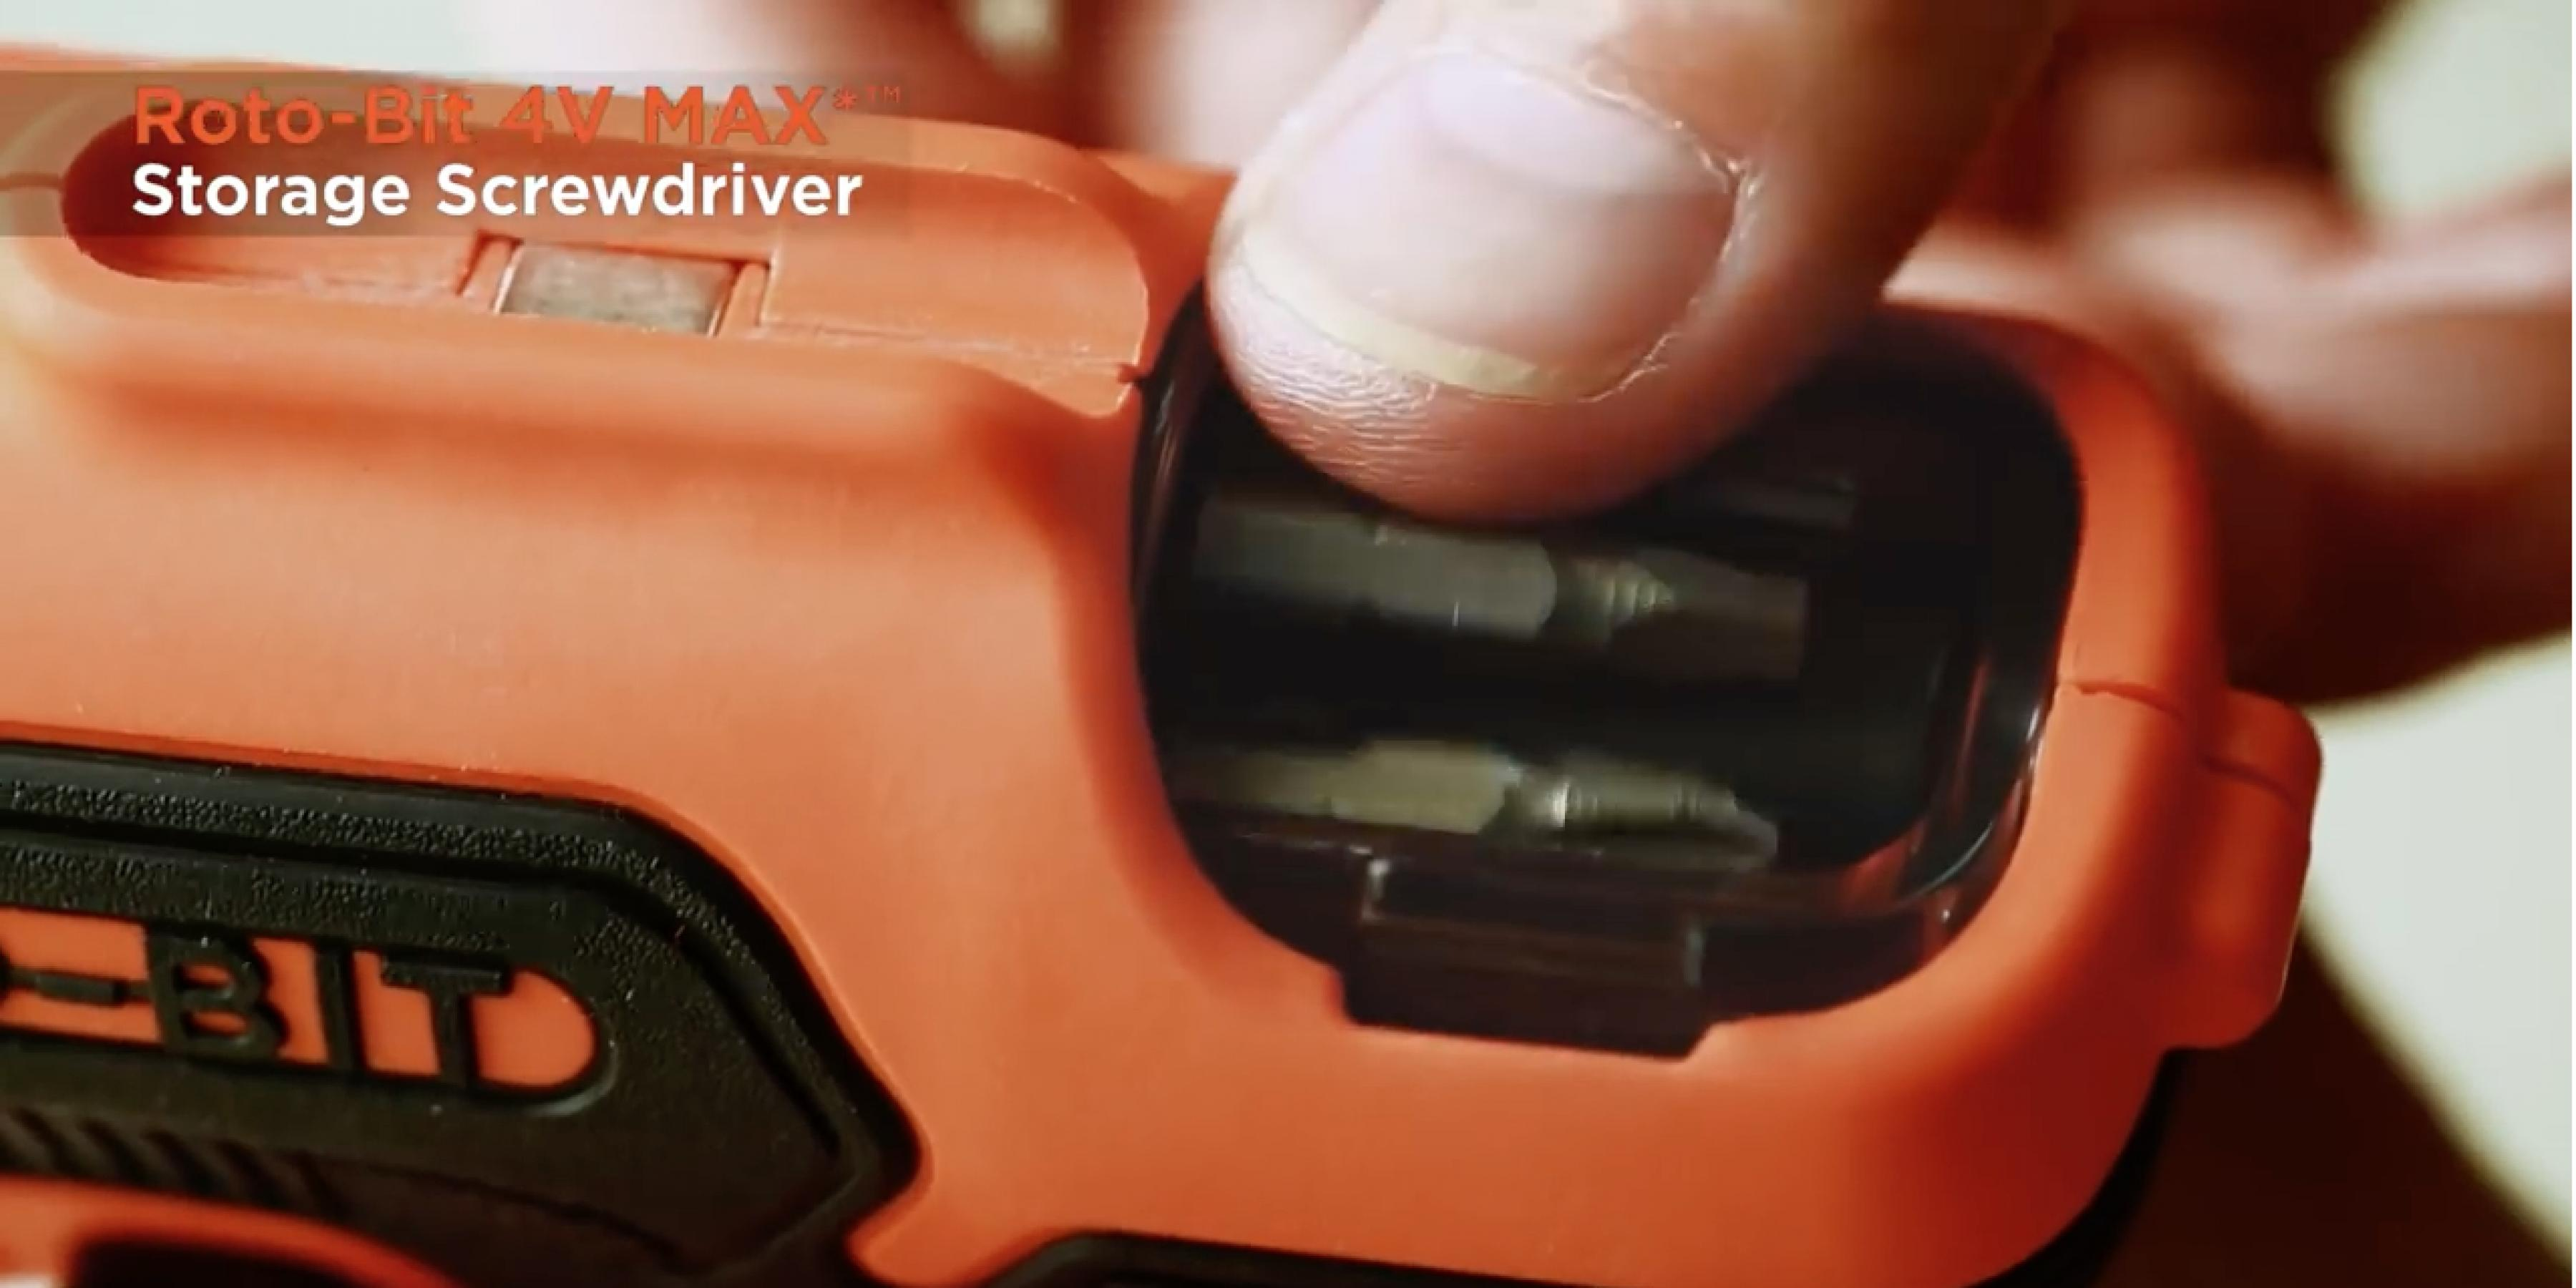 New 4V MAX* Roto-Bit Storage Screwdriver